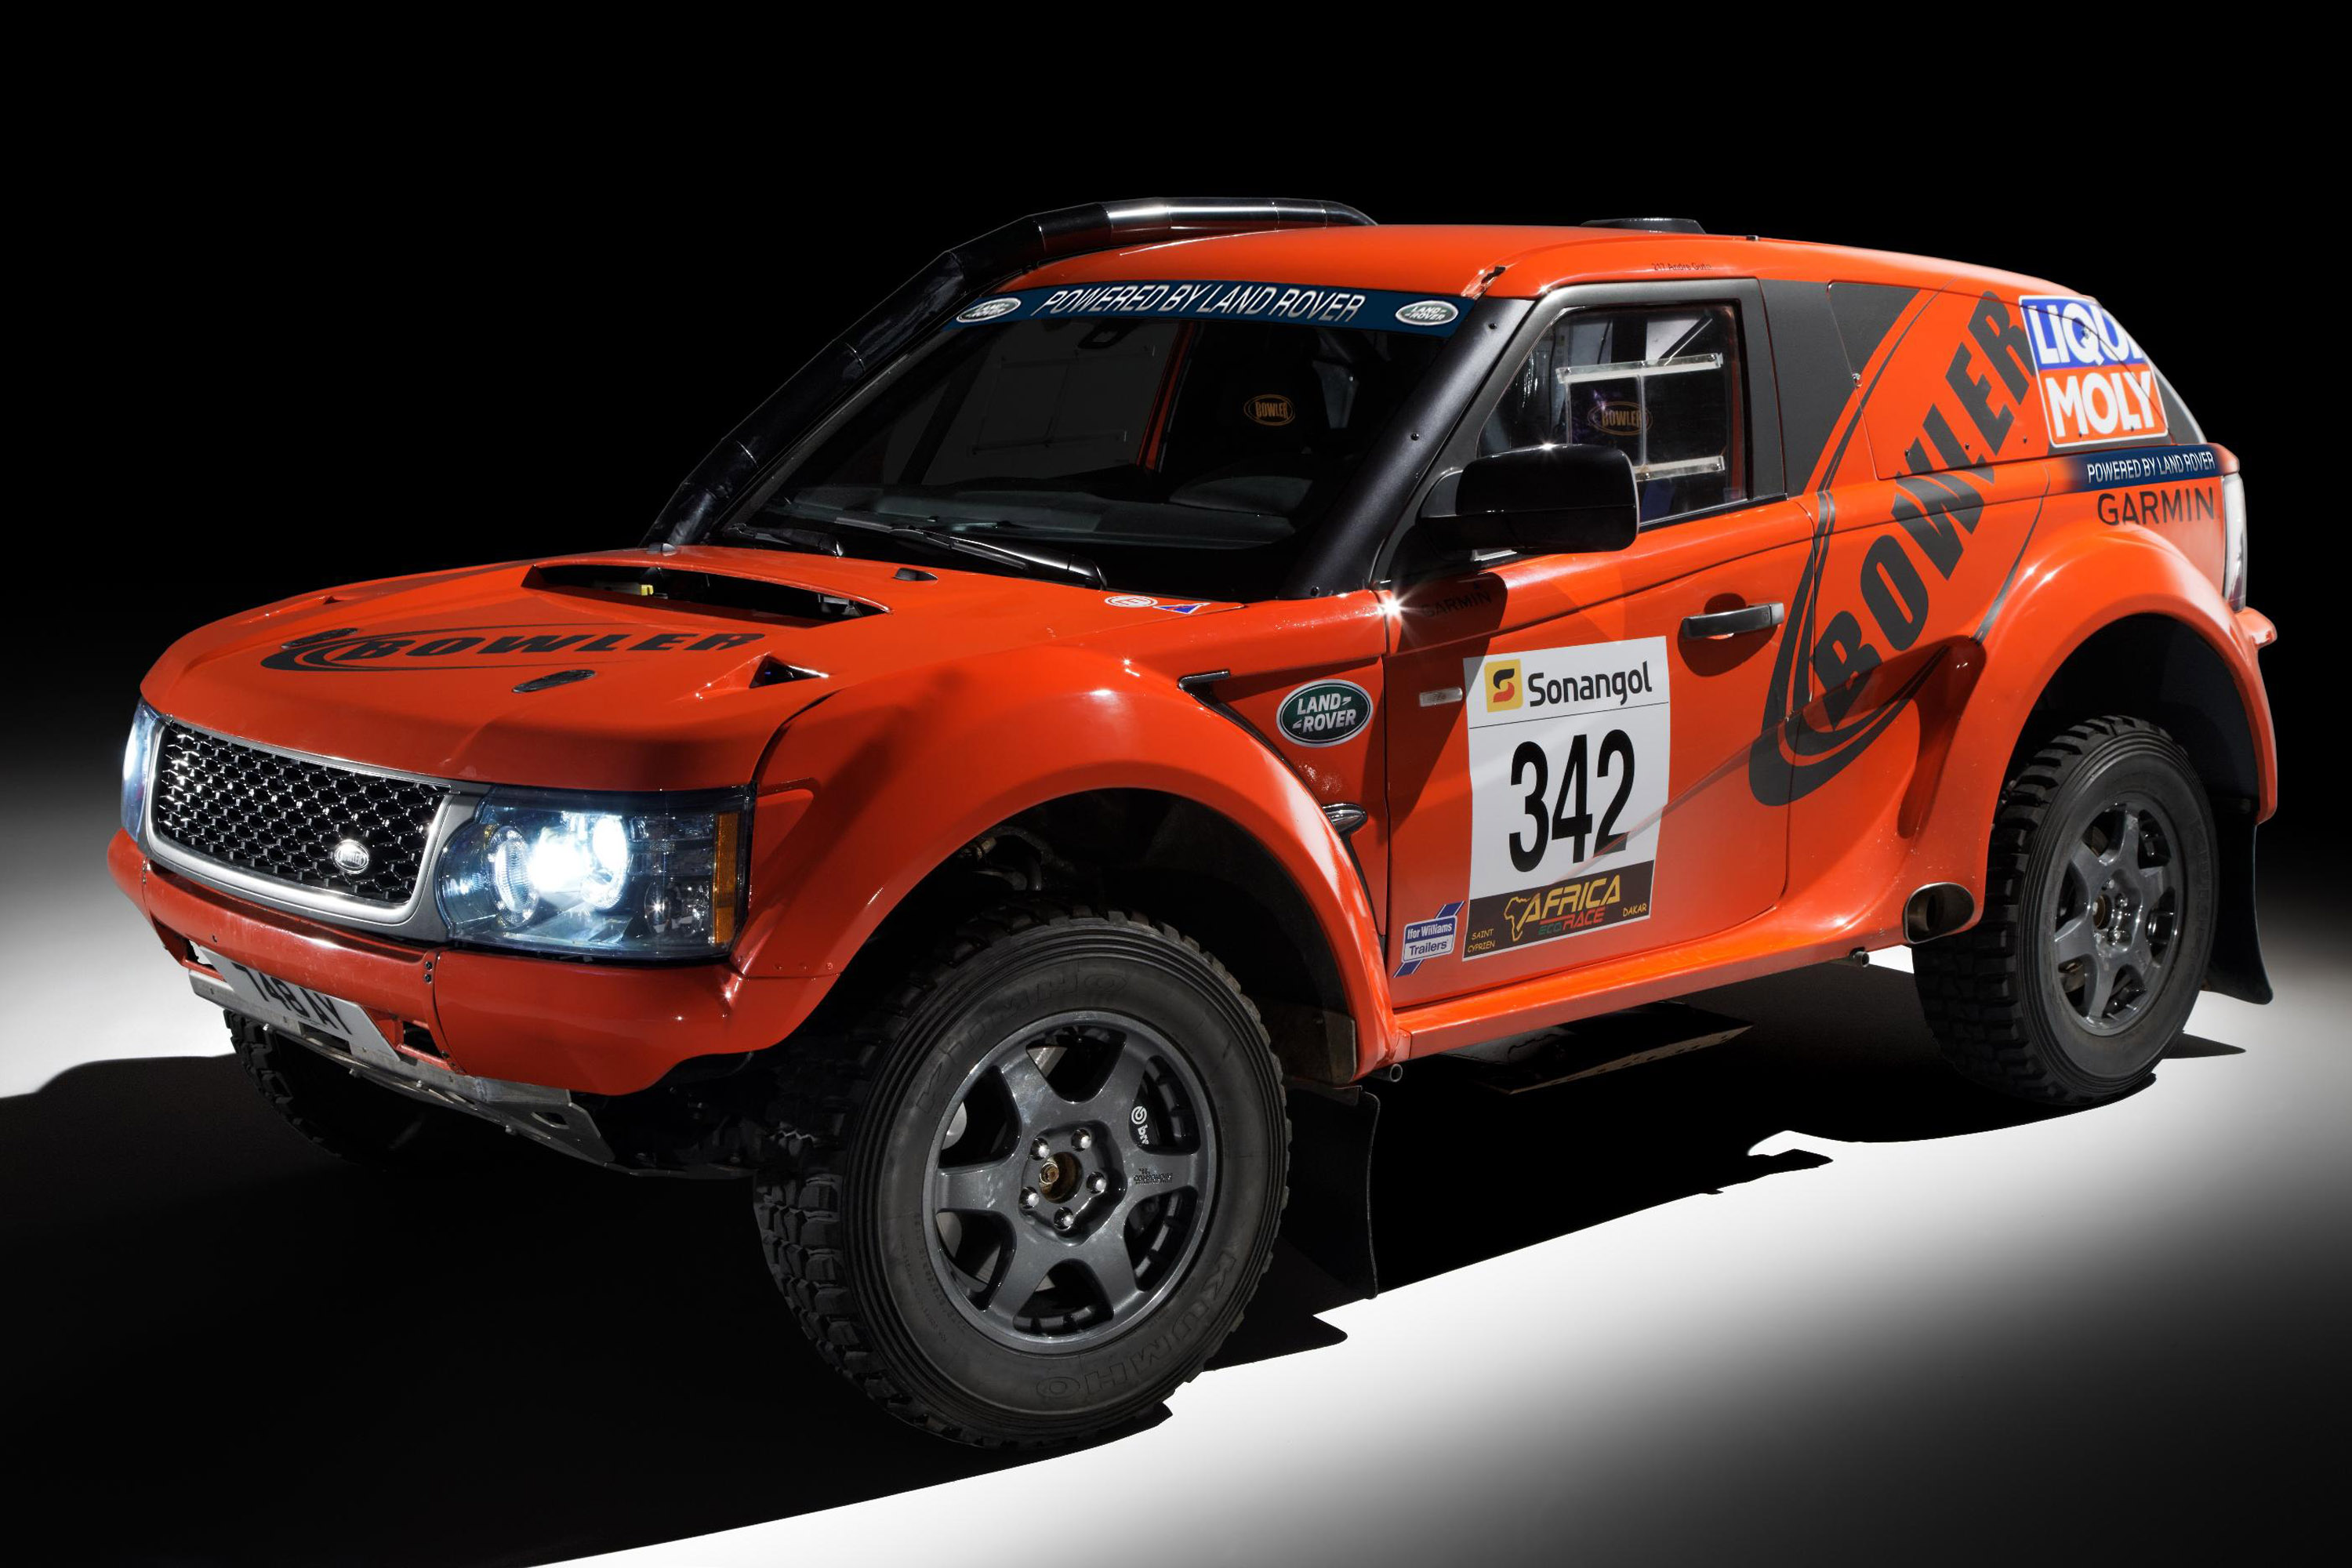 Range Rover Sport Supercharged >> Bowler EXR rally car and EXR S road car powered by Land Rover